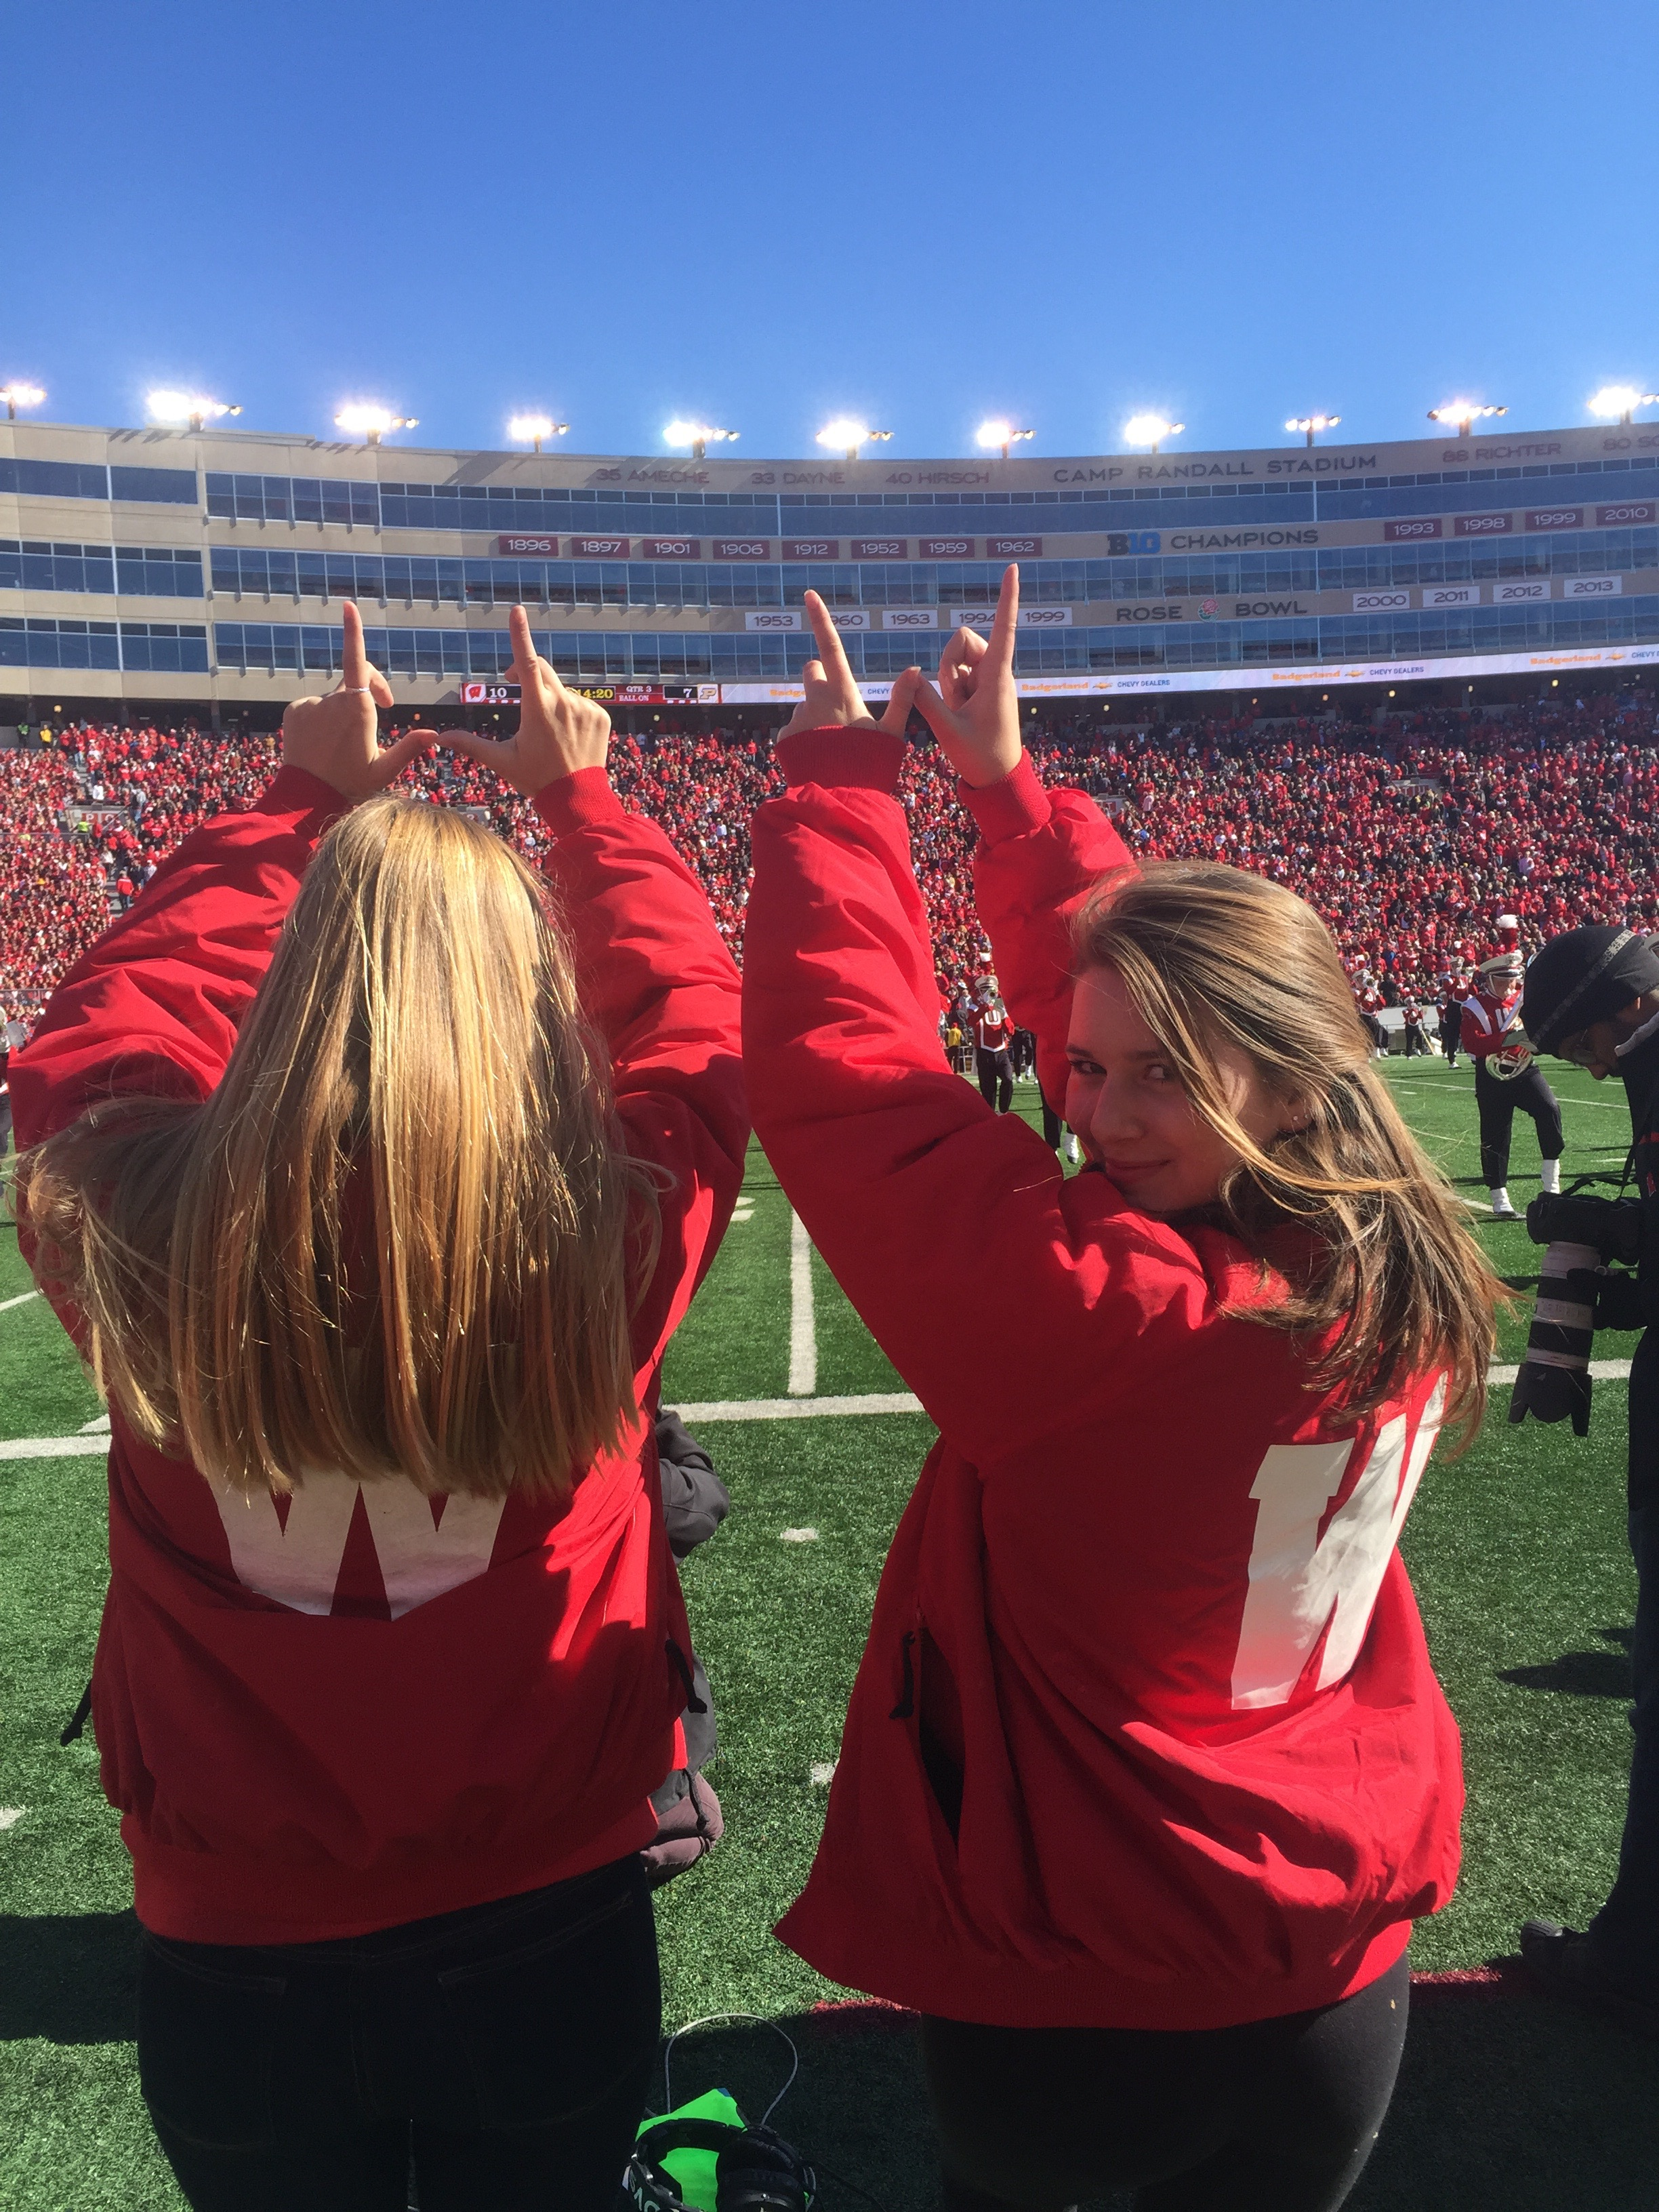 Natalie reps Homecoming in her 'dubs'on the Camp Randall field during halftime.